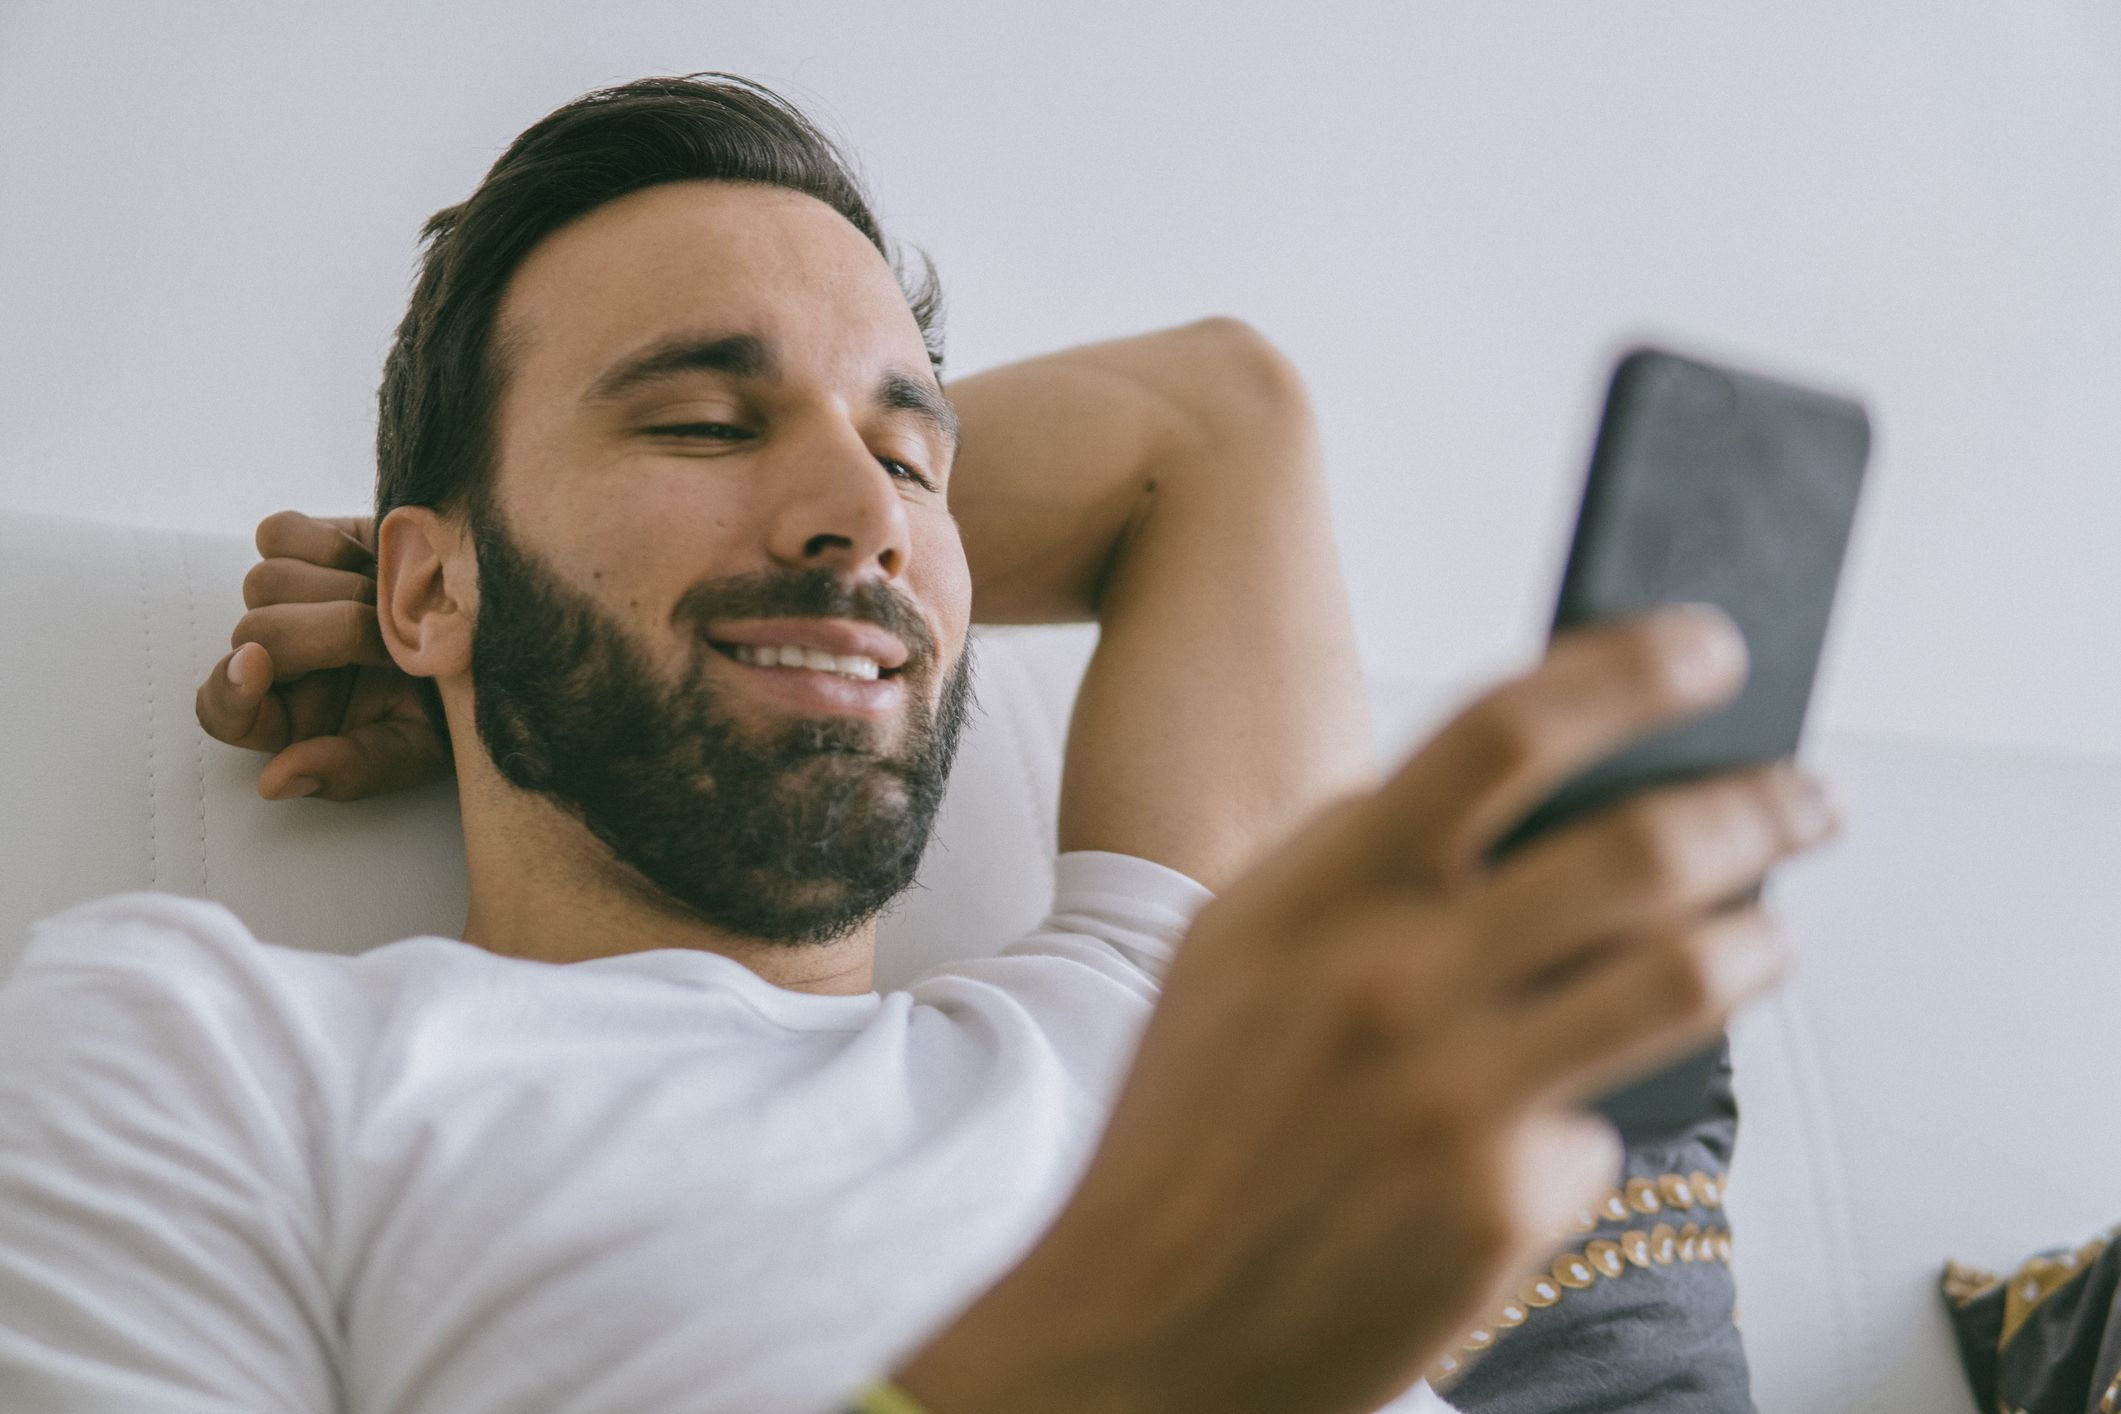 57 Good Morning Texts to Send the Special Guy in Your Life